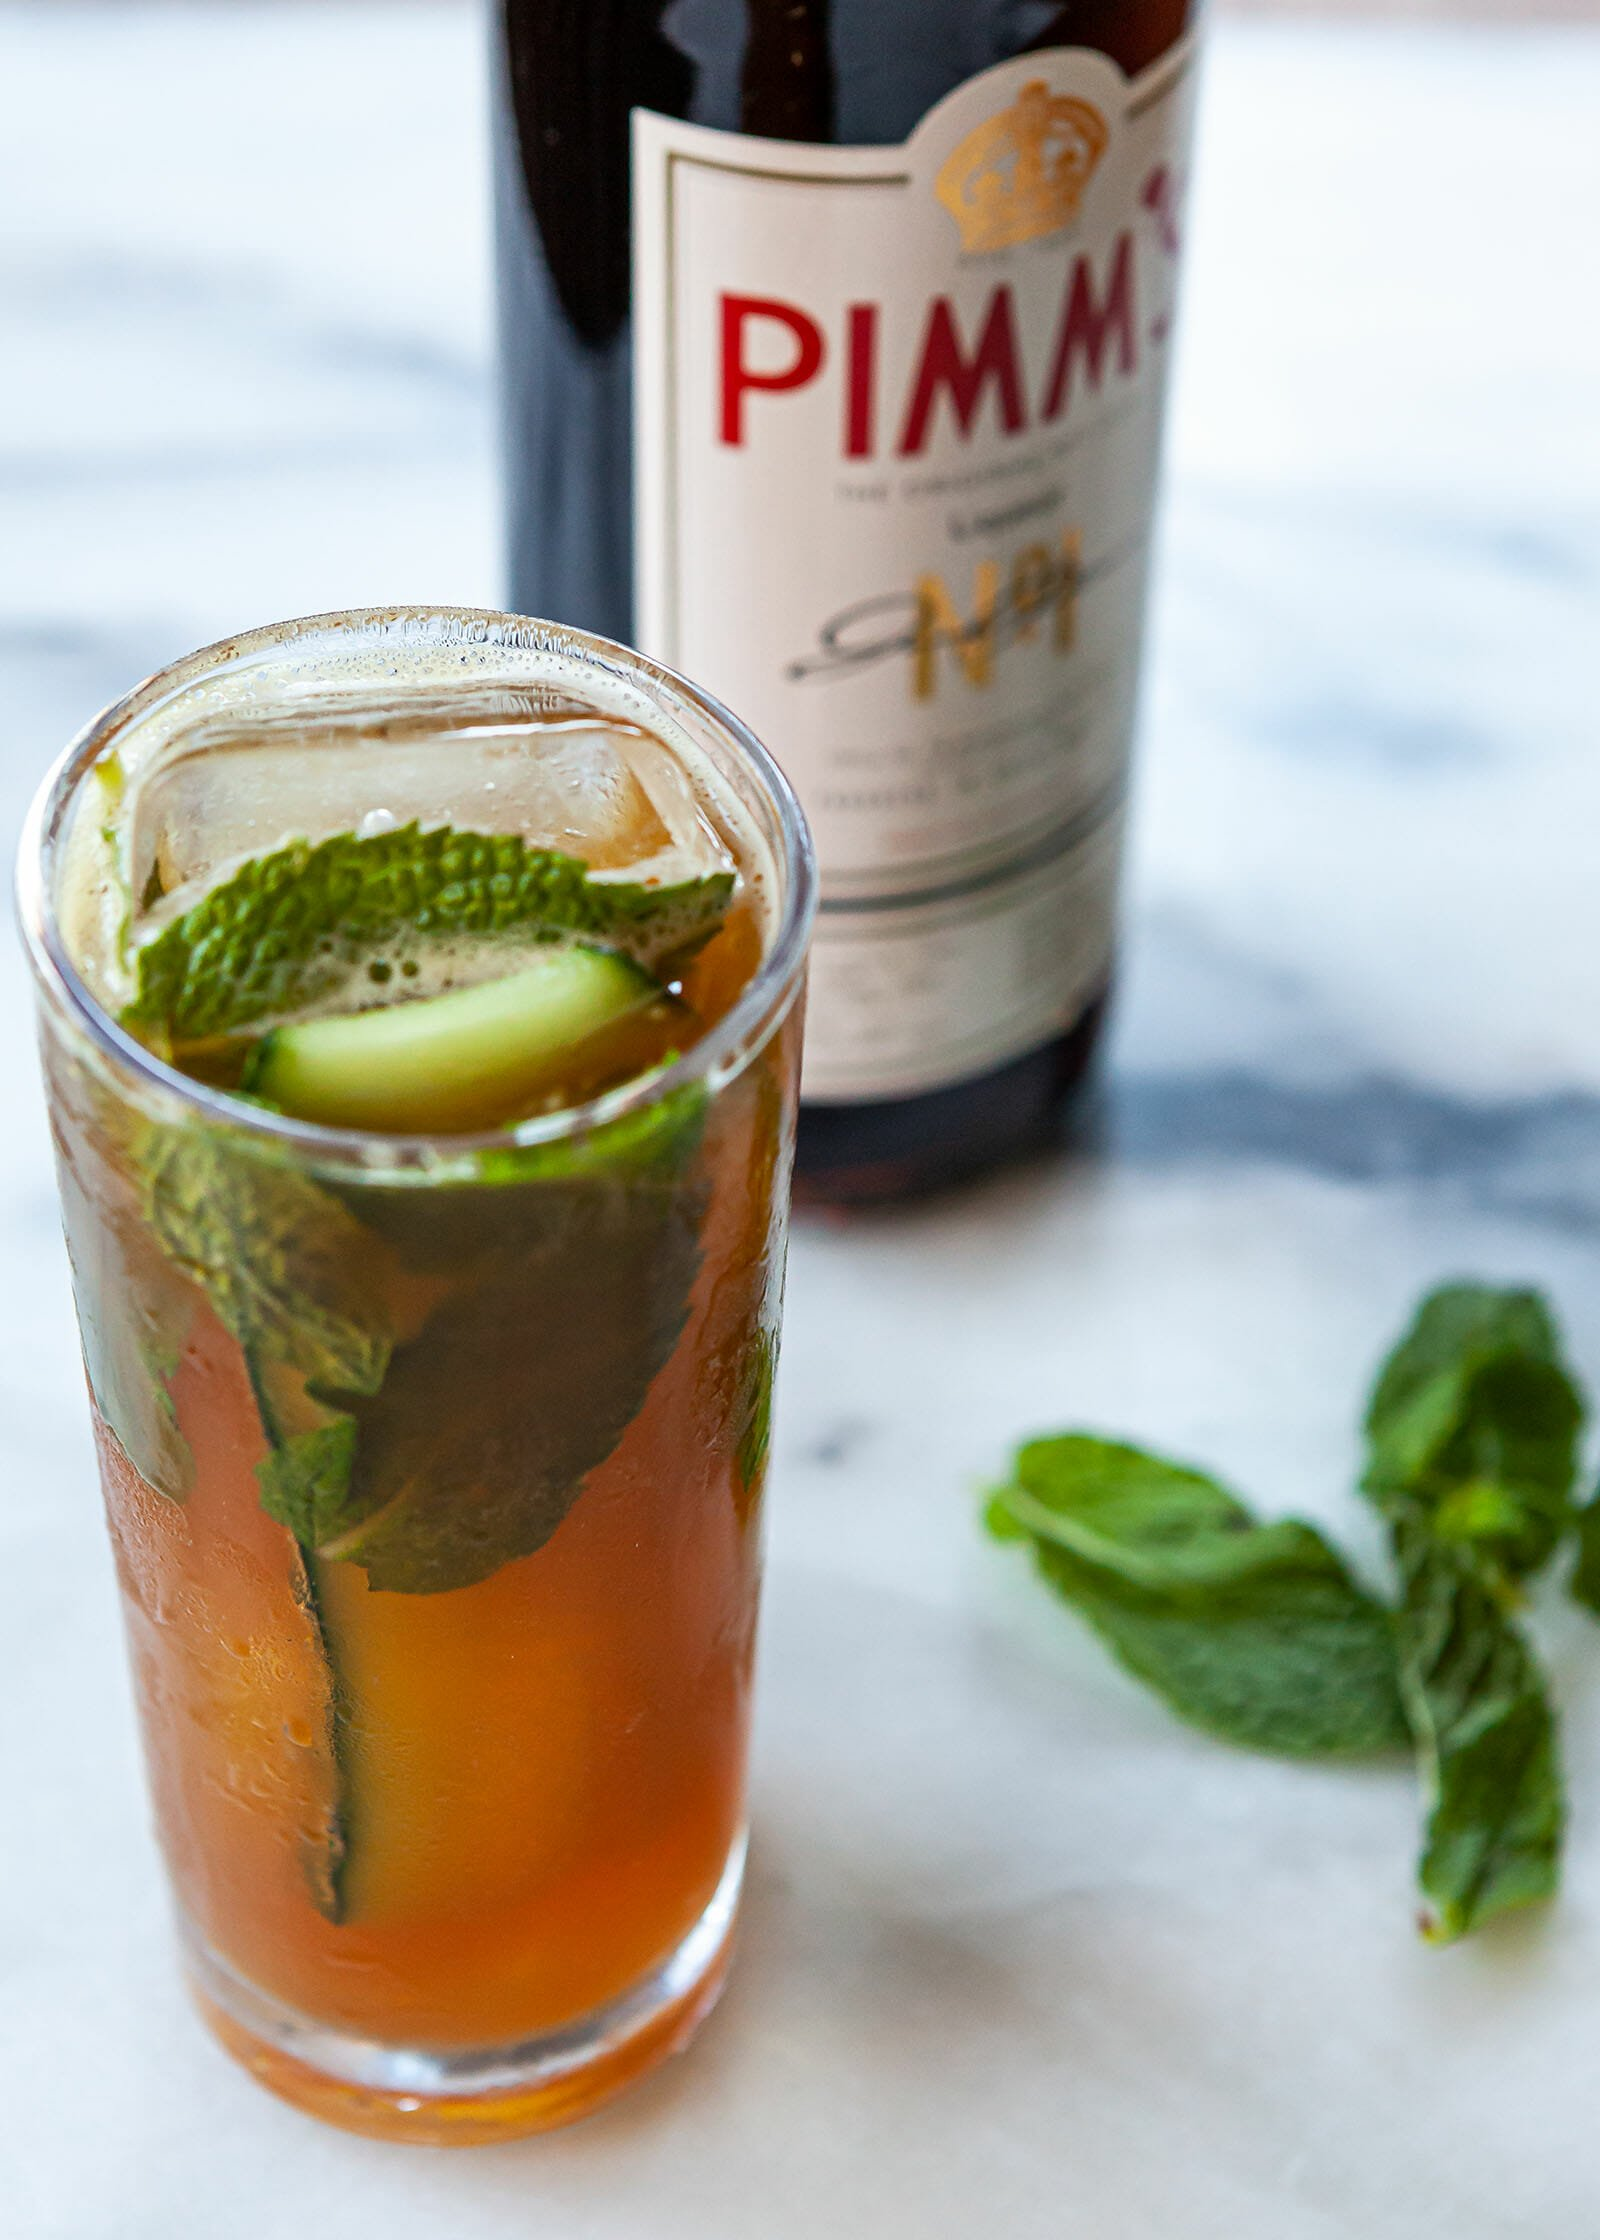 A tall glass with a Pimms cup cocktail is on a counter with mint leaves and a bottle of Pimms no 1 behind it.